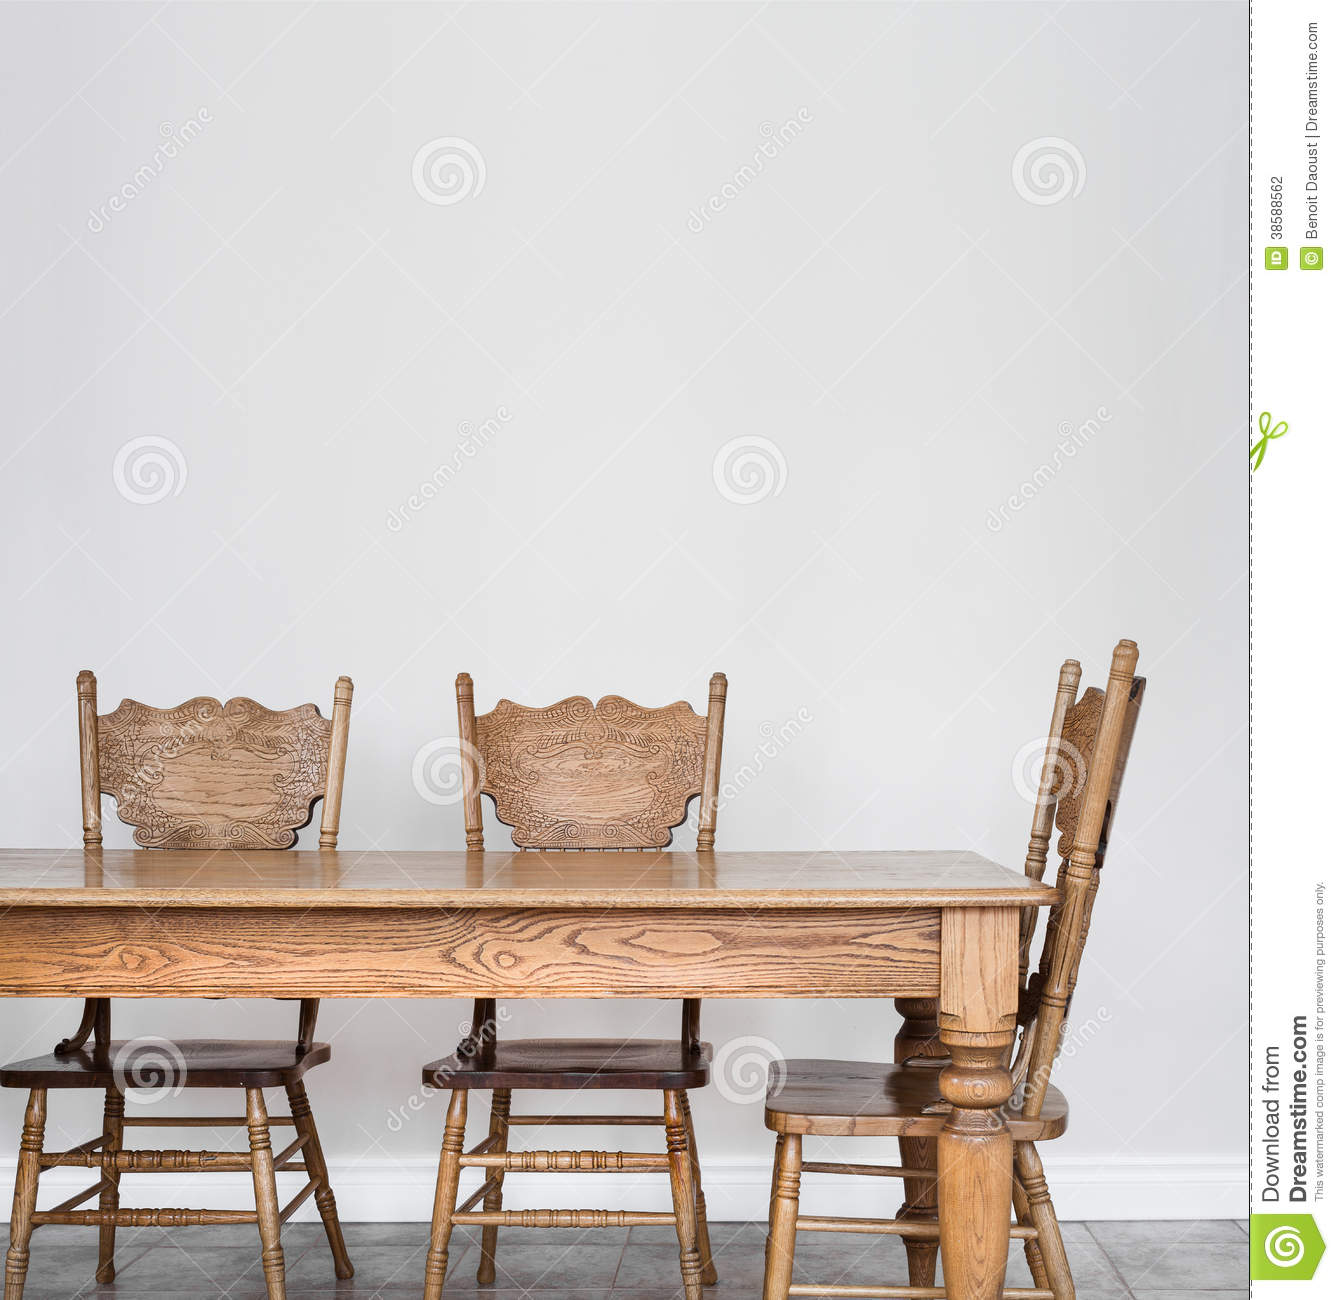 Blank Wall Ideas Dining Room : Wooden dining room table and chair details stock